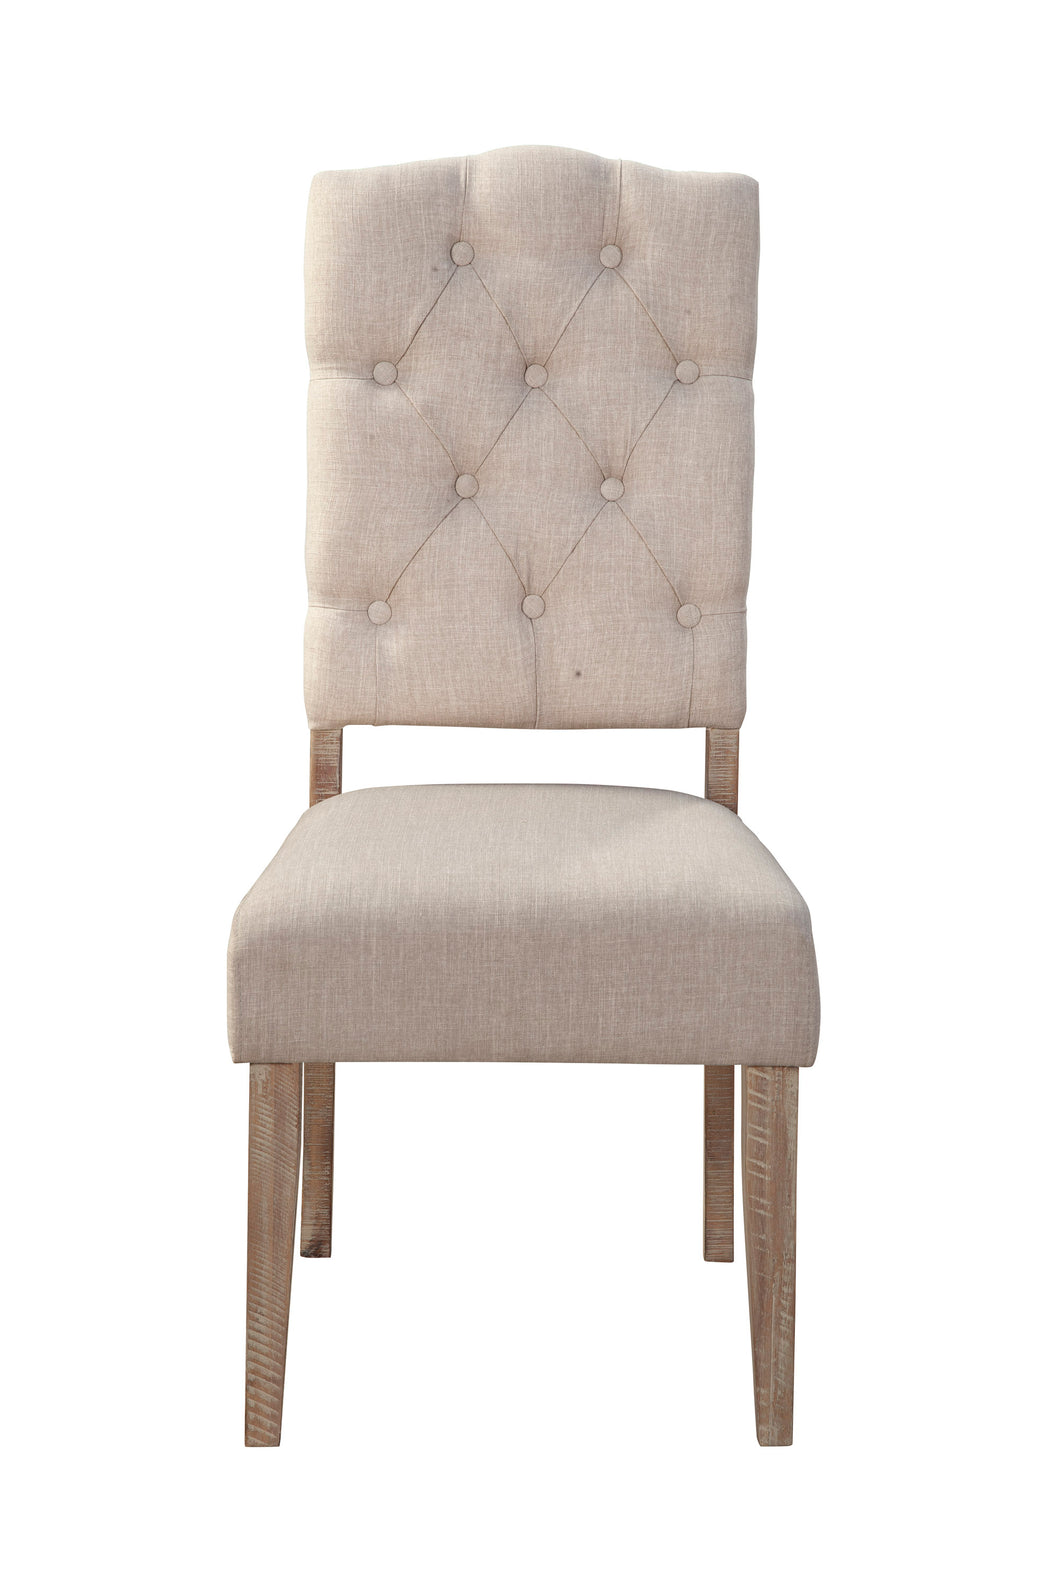 Newberry Side Chairs (Weathered Natural)